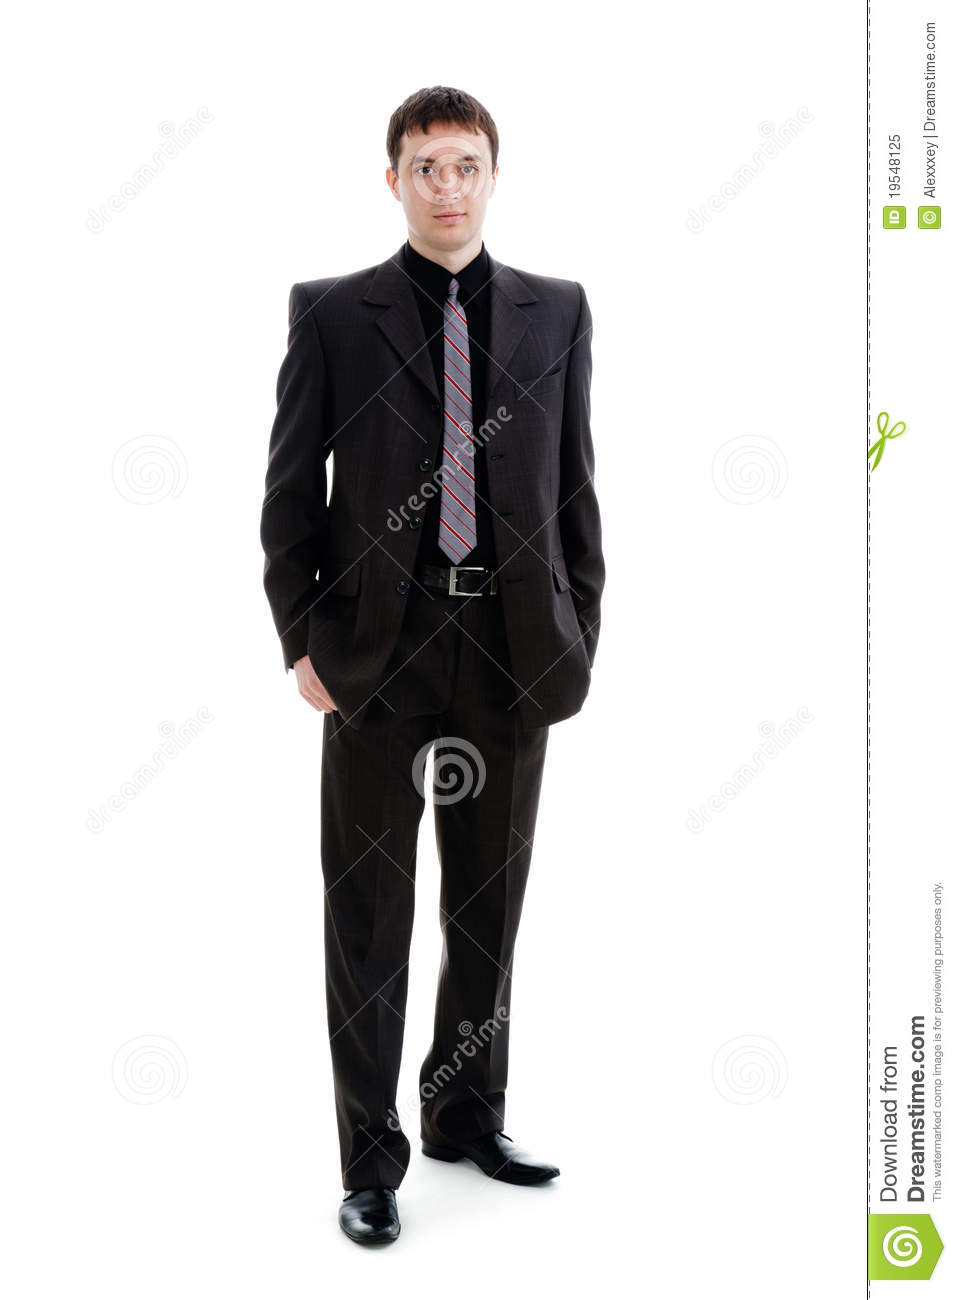 asian suits for men images casual suits for men weddings images modern bedroom design ideas